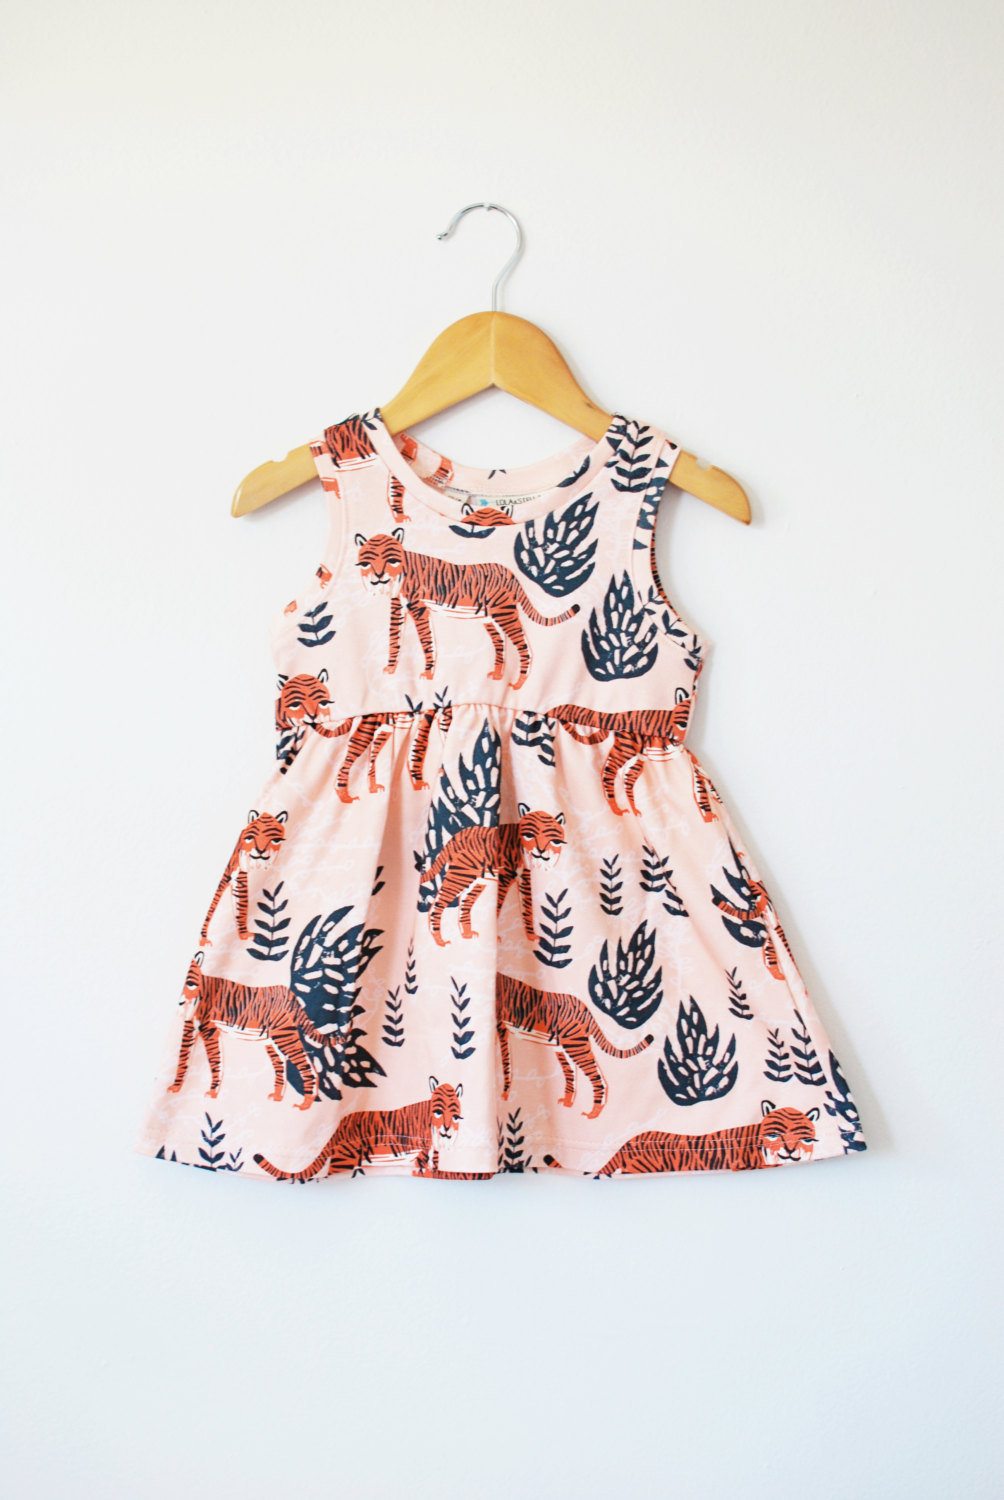 Capital a 2015 for safaris and twirling twirl dress from lola and stella on etsy i also love their leggings for chubby baby legs gumiabroncs Image collections